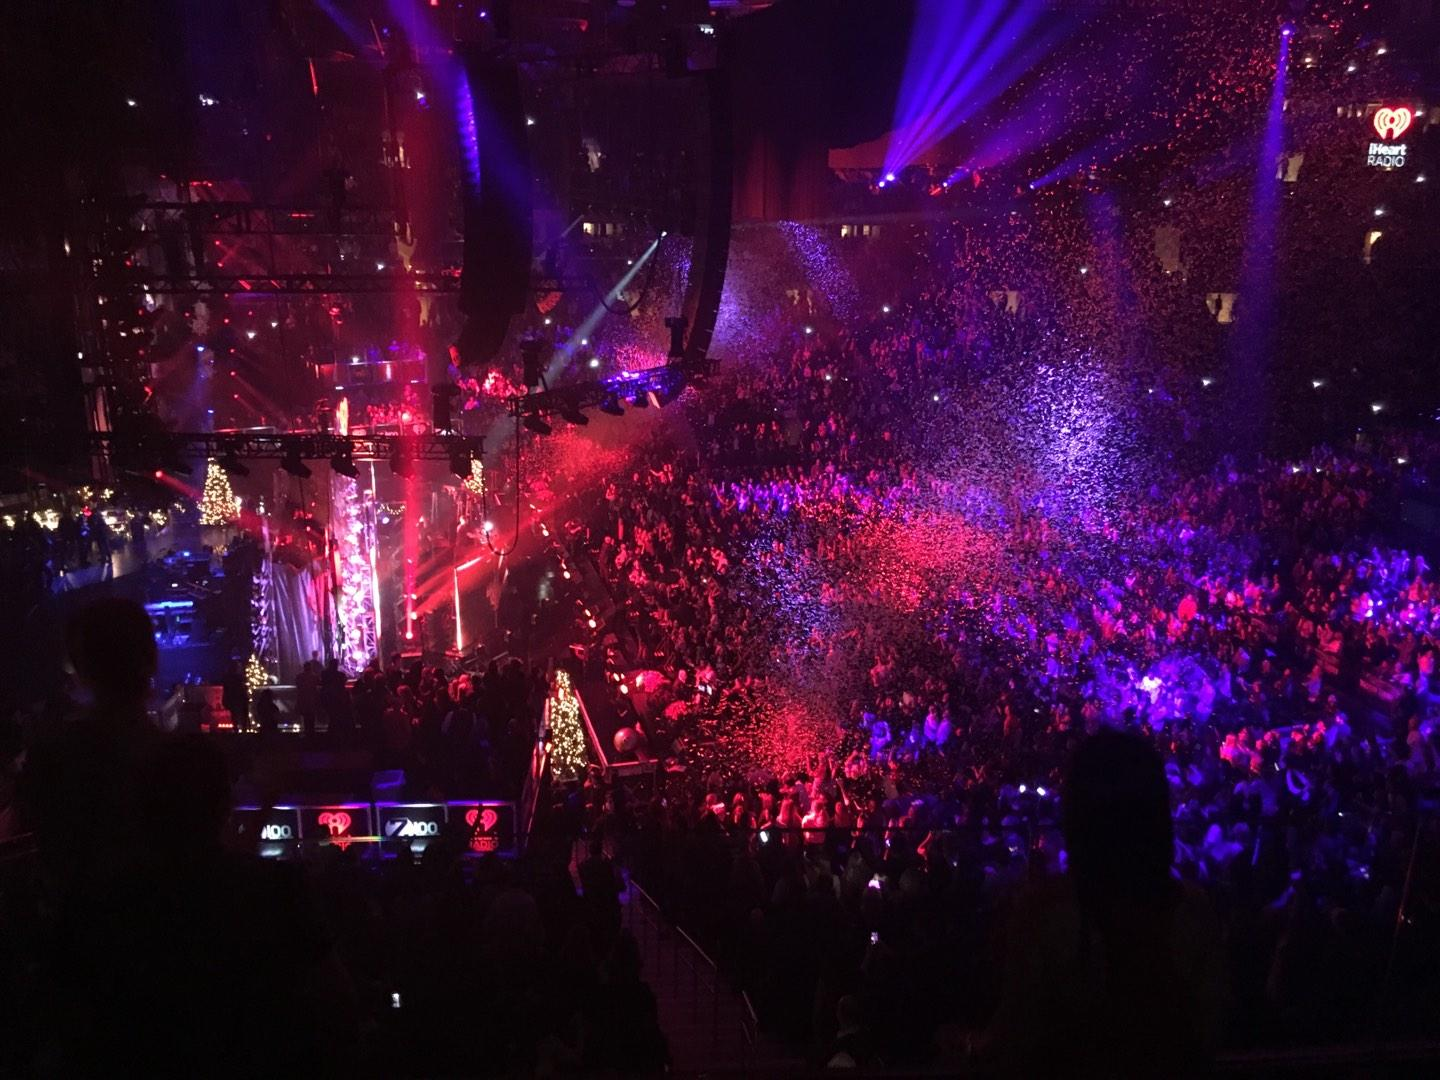 Madison square garden section 222 row 4 seat 13 vs jingle - Jingle ball madison square garden ...